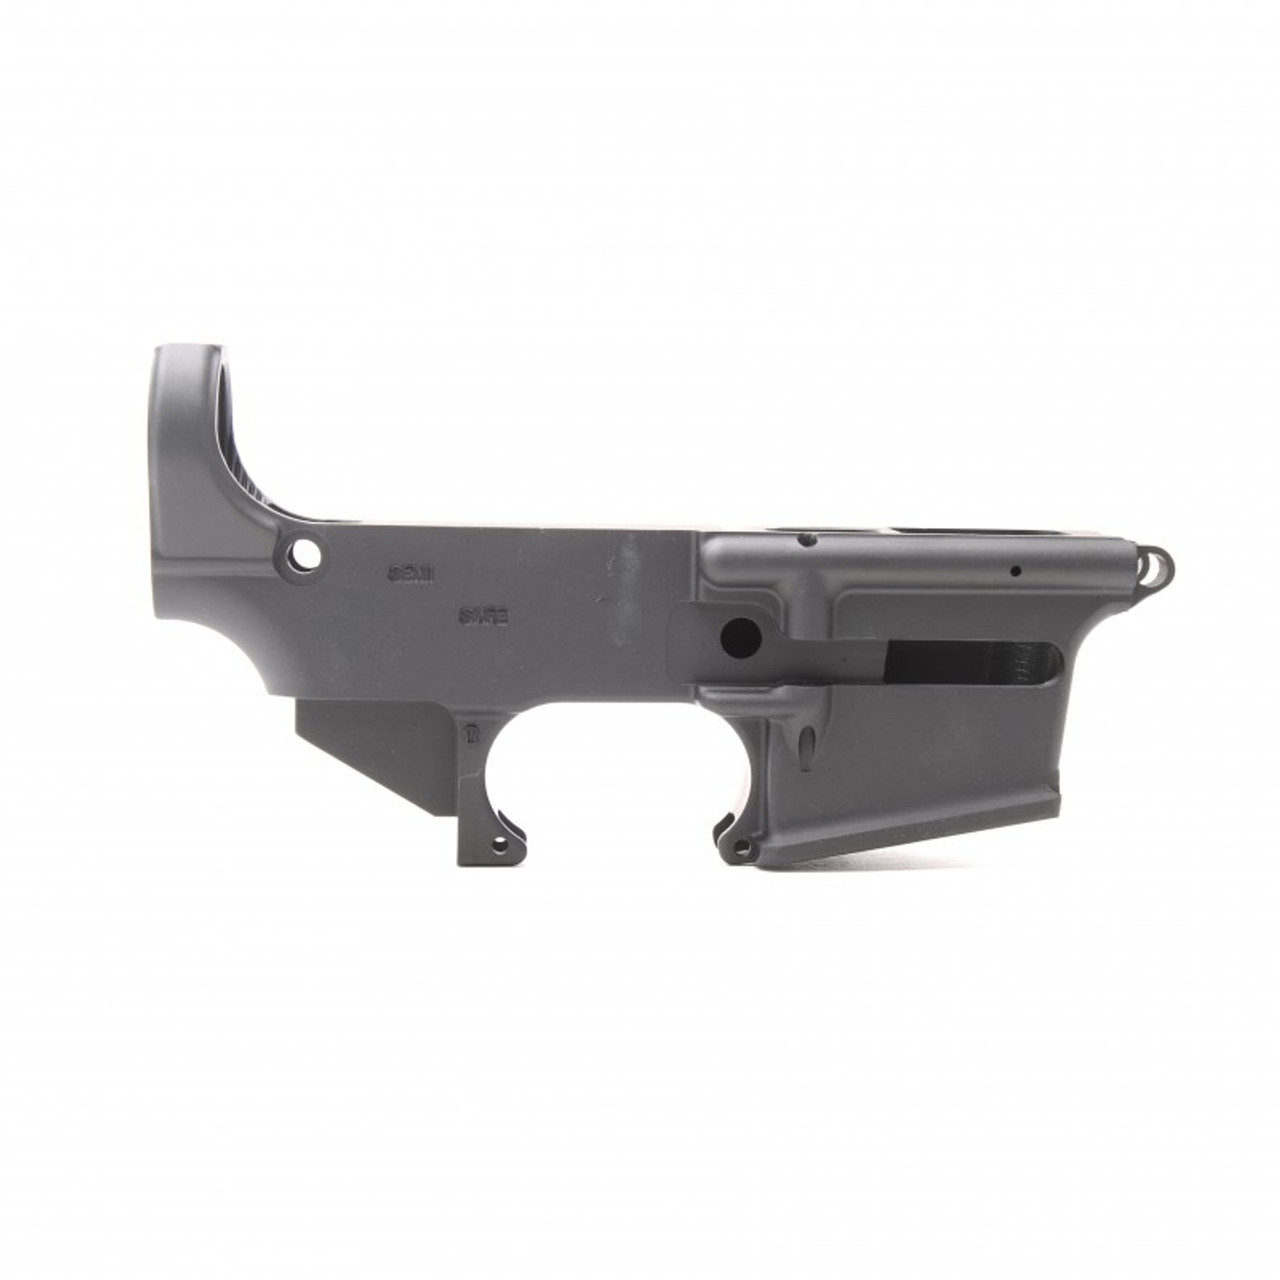 MDX Arms AR9 80% Anodized Lower Receiver Anodized Side